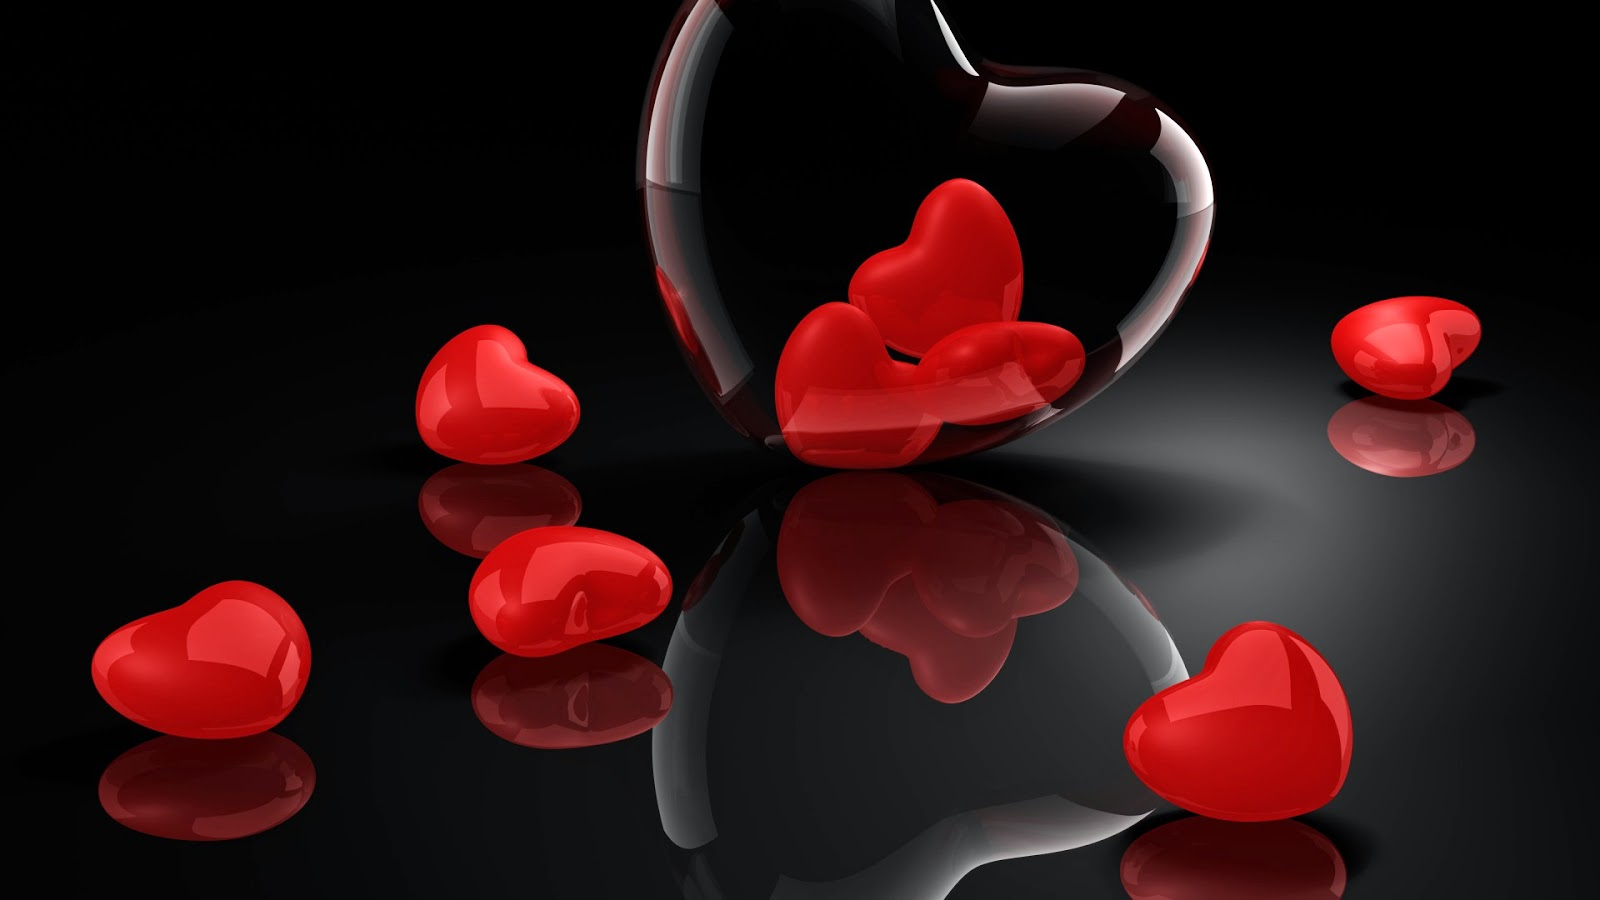 Black Red Love Wallpaper : Be-romantic-love-valentines-day-hd-free-wallpaper - HD Wallpaper